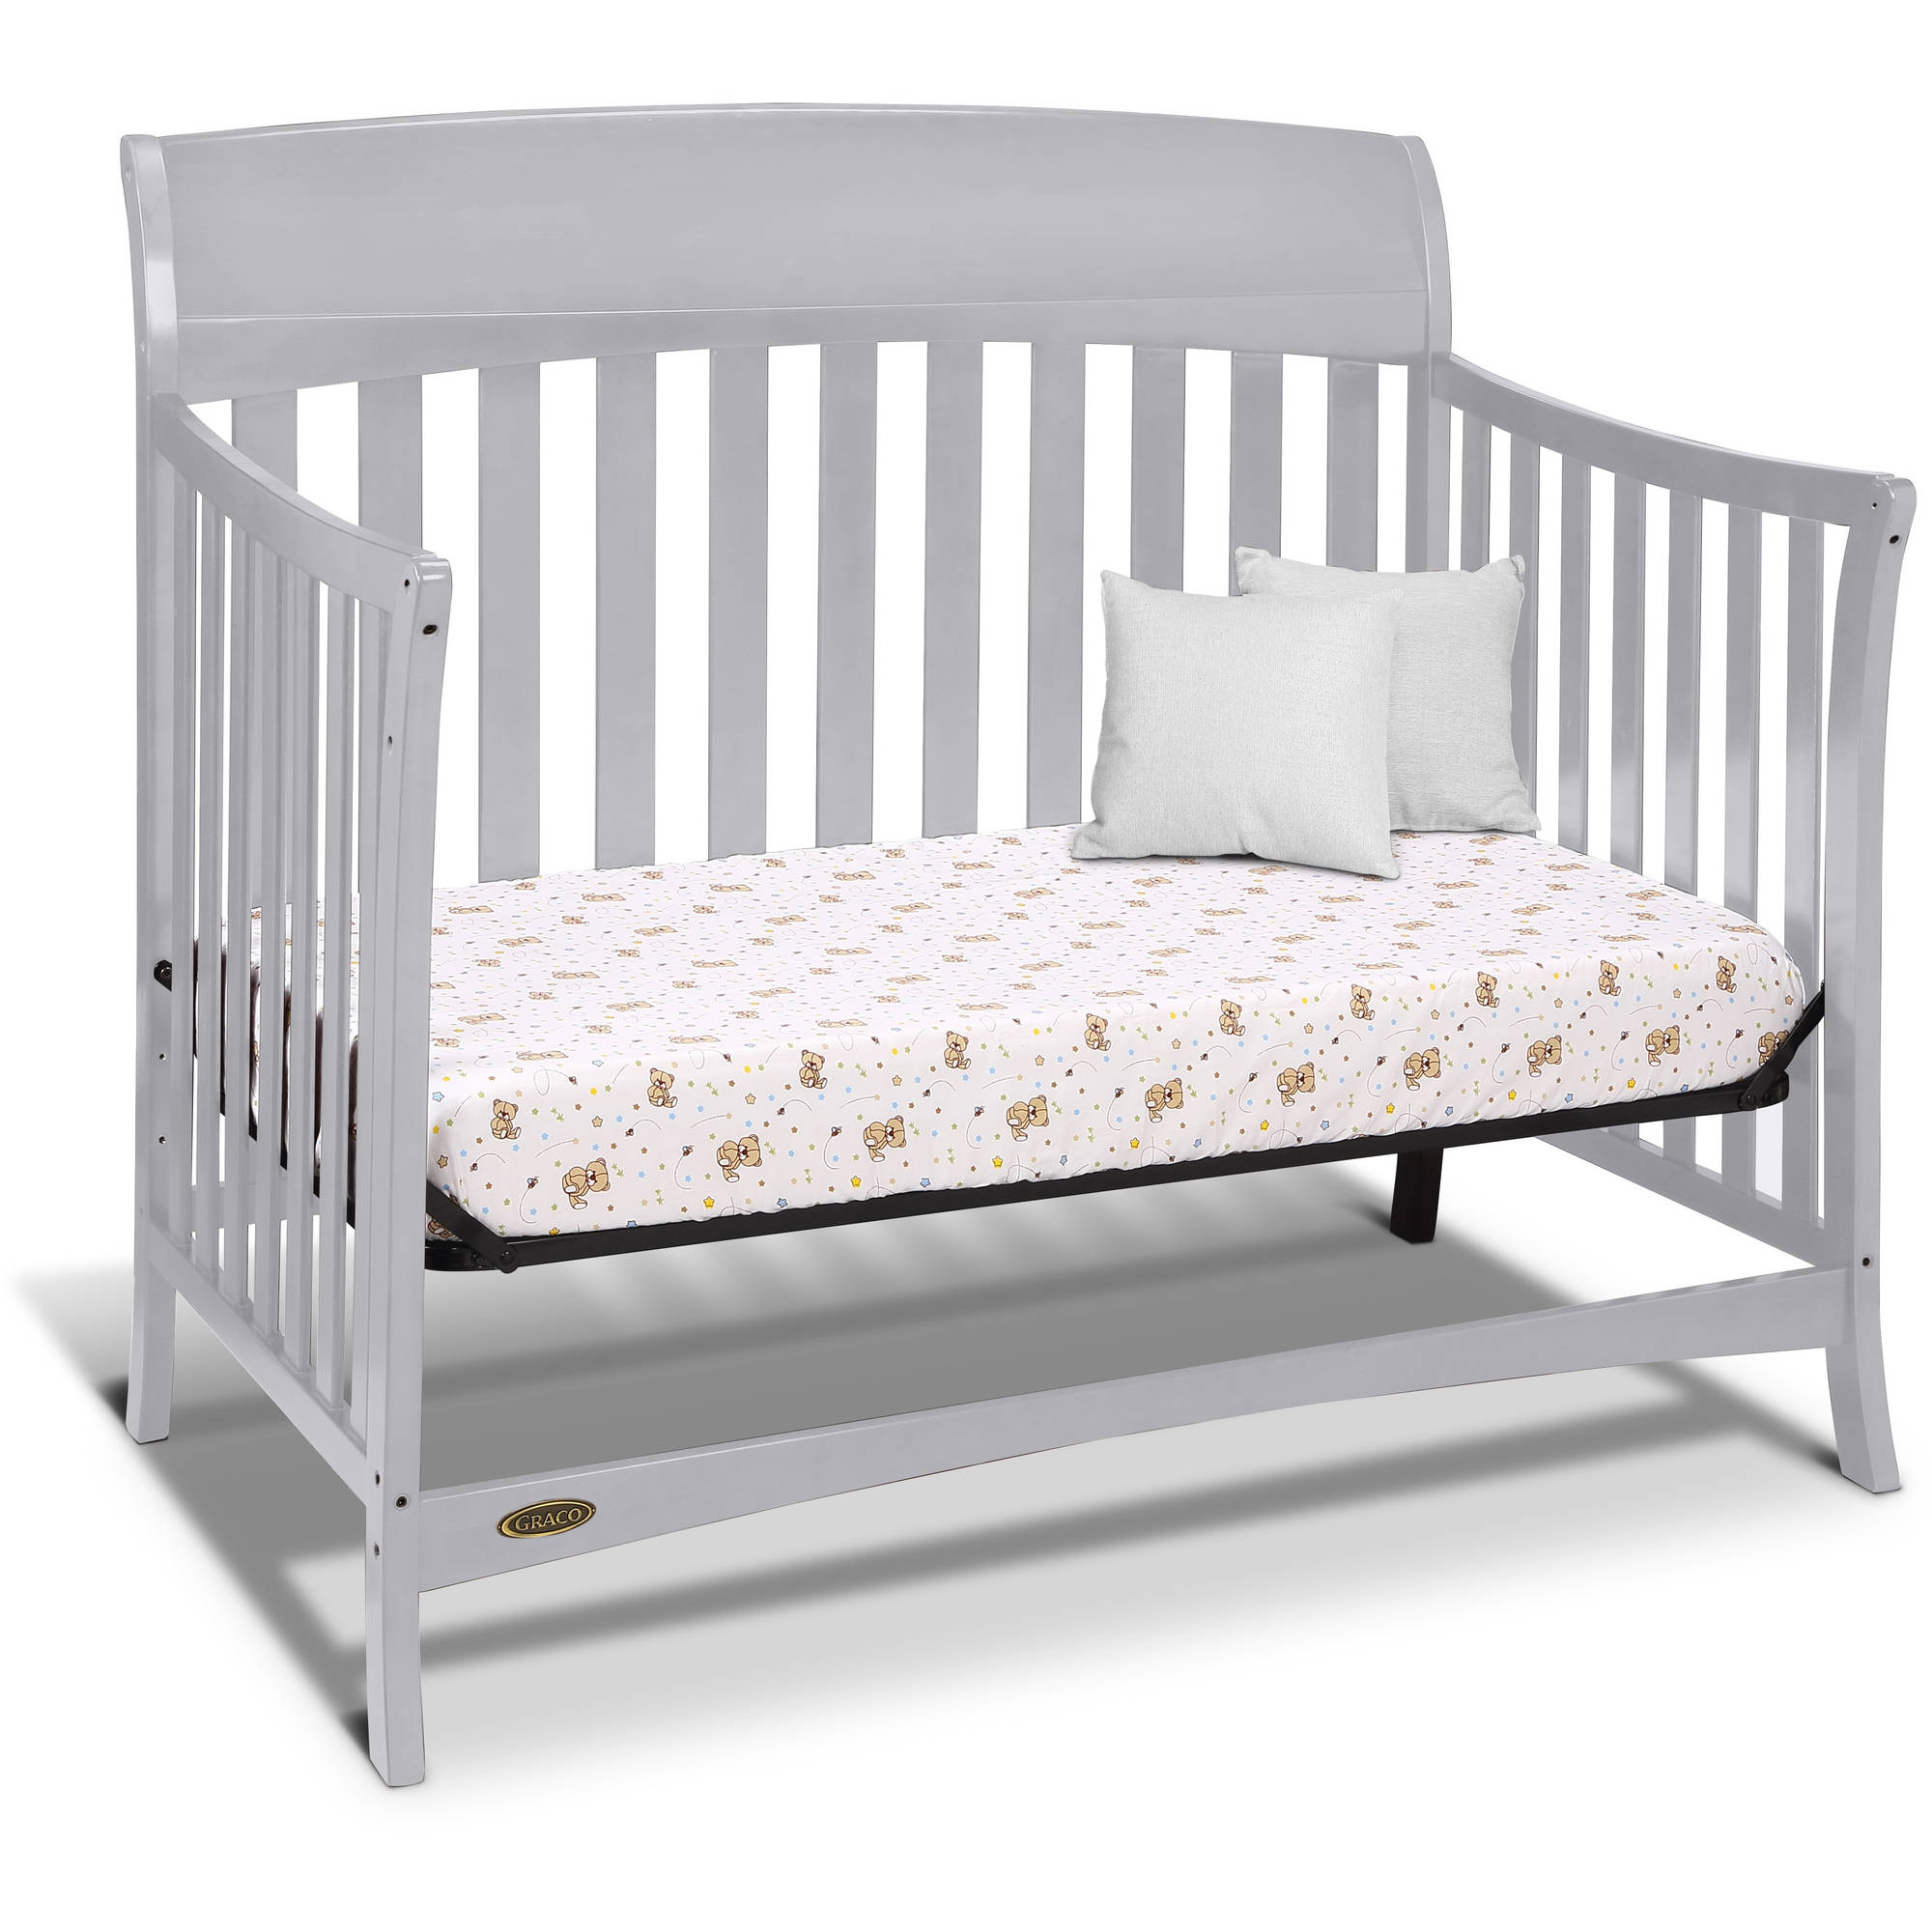 bed day toddler crib child london mini cribs in to coventry matte craft queen f white jijiz instructions daybed convertible